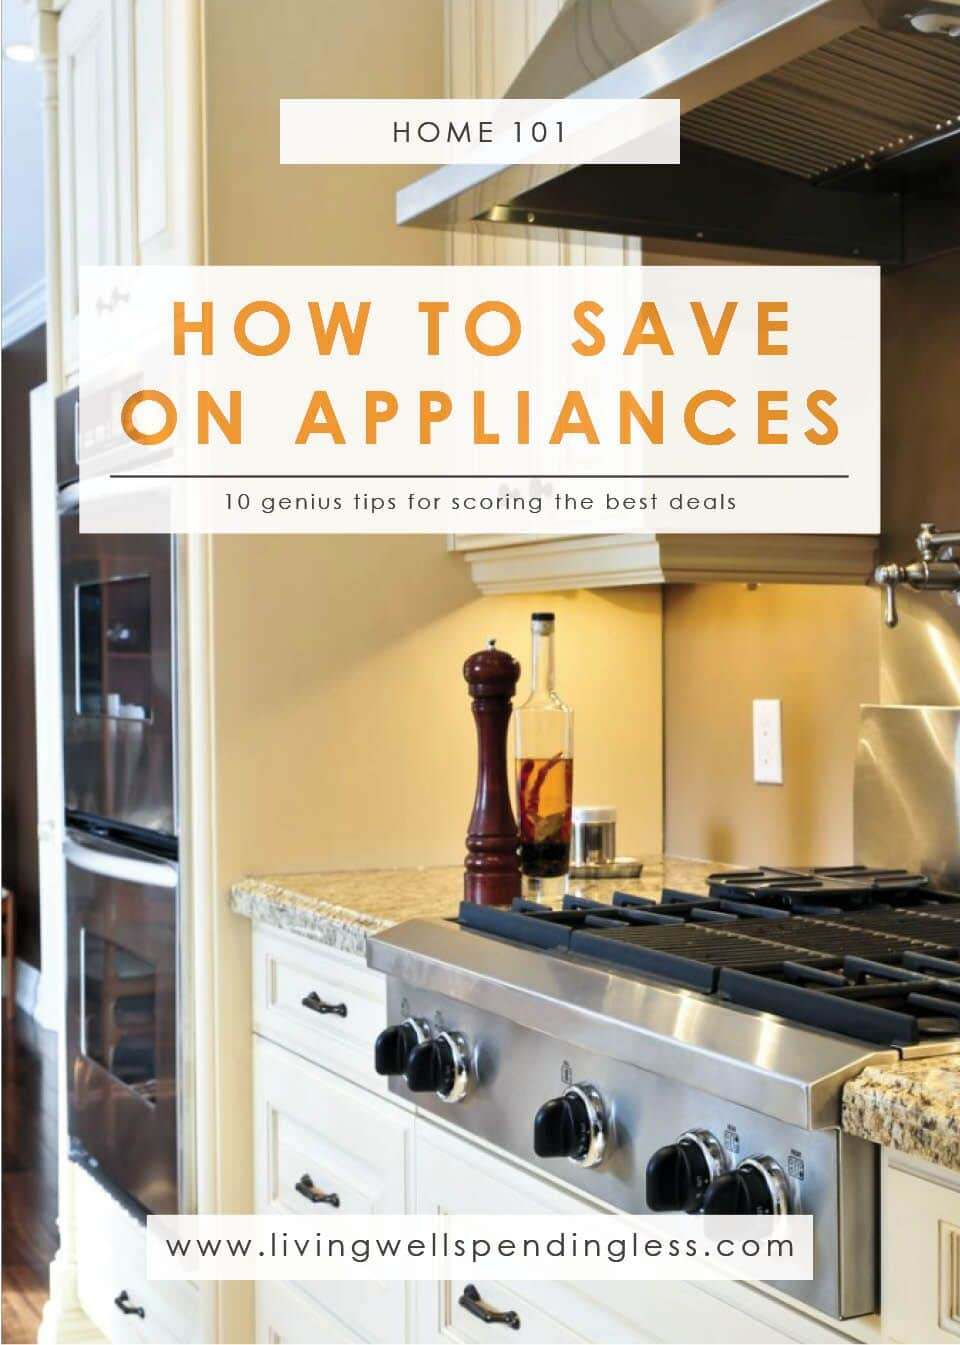 Save on Appliances | Money | Budgeting | Home 101 | Money Saving Tips